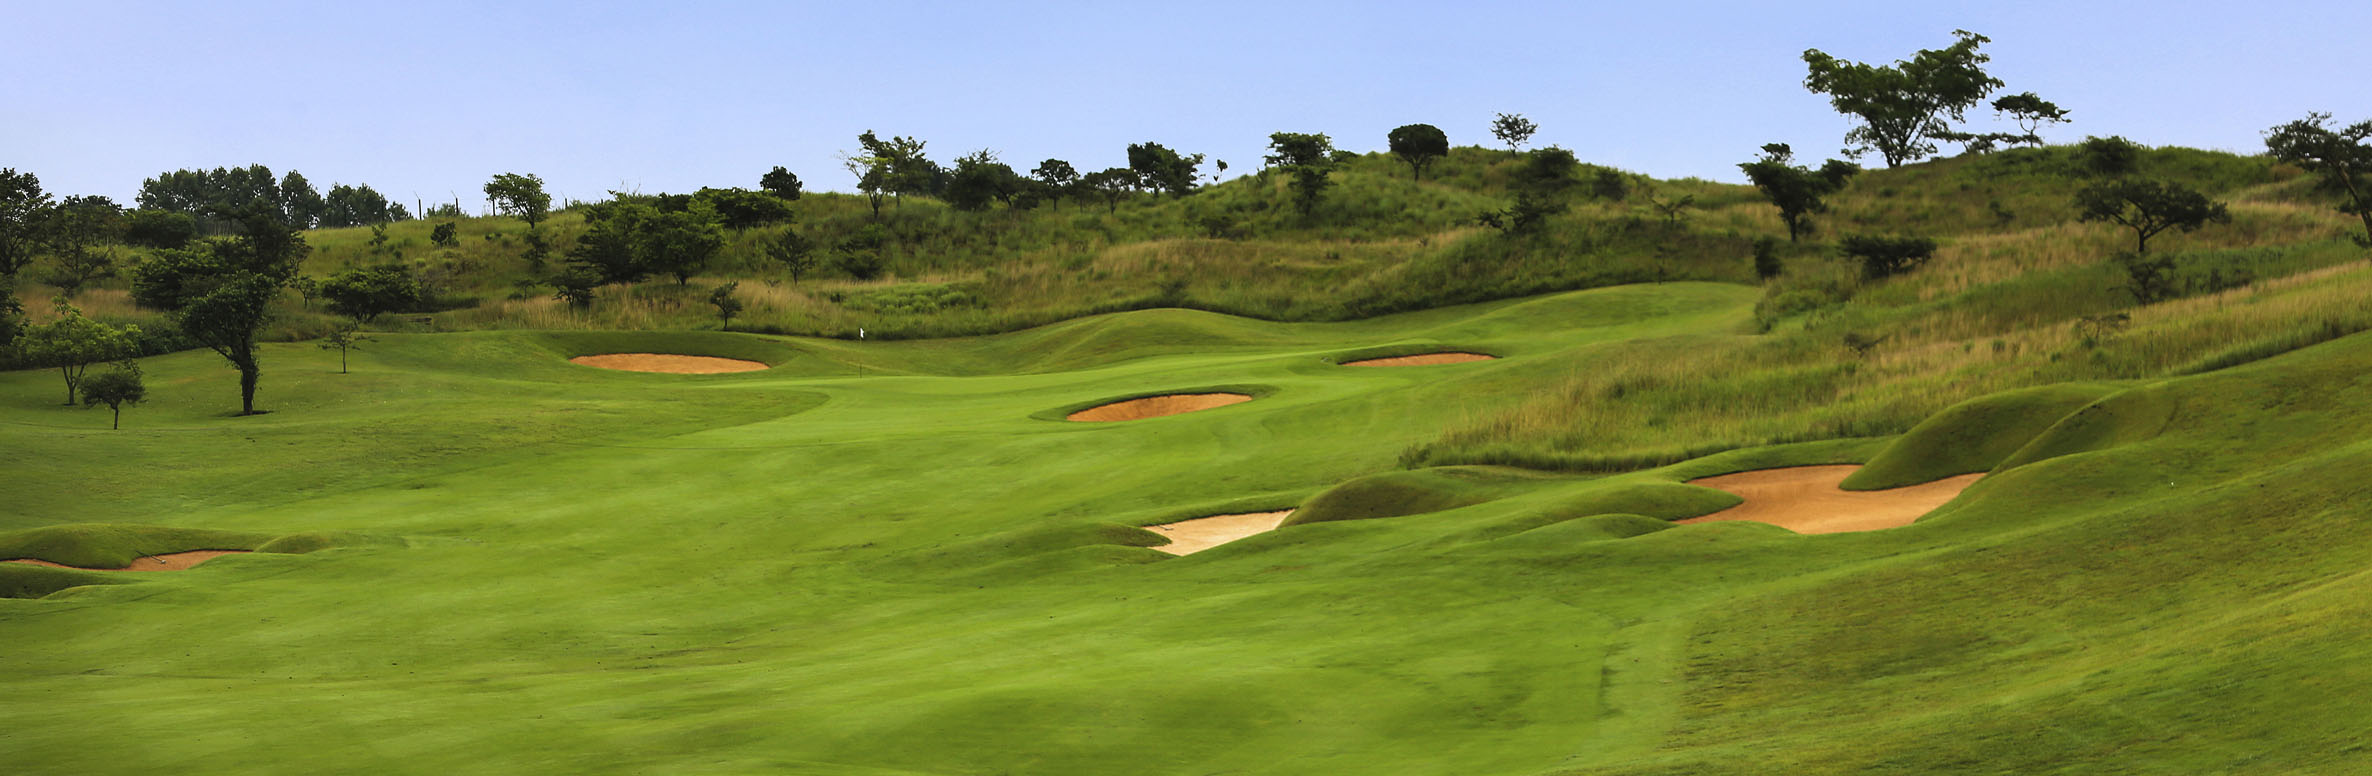 Golf Course Image - Cotswold Downs No. 3